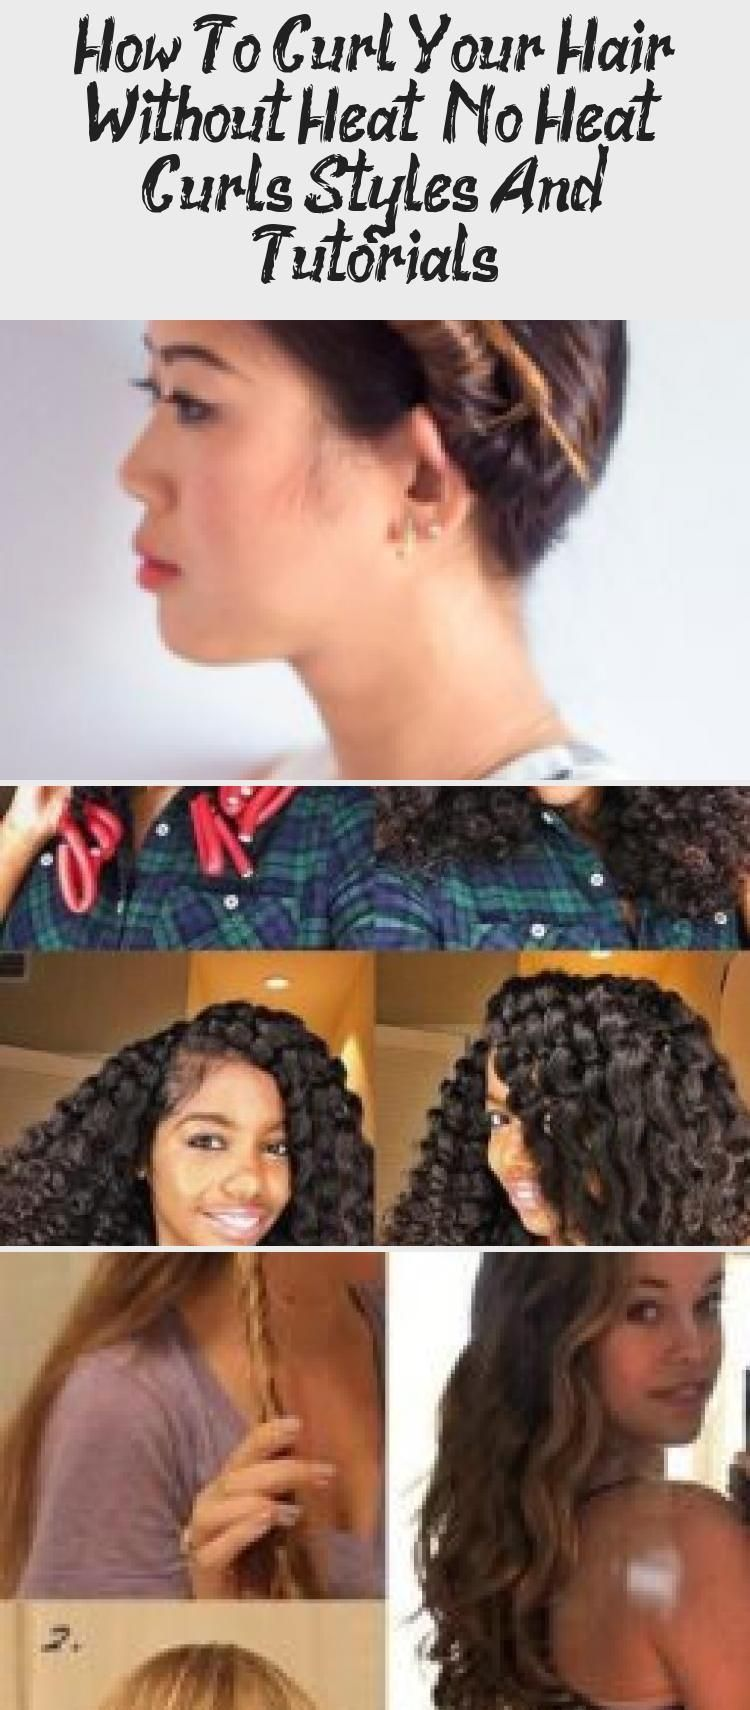 My Blog En Blog In 2020 How To Curl Your Hair Damp Hair Styles Curls No Heat